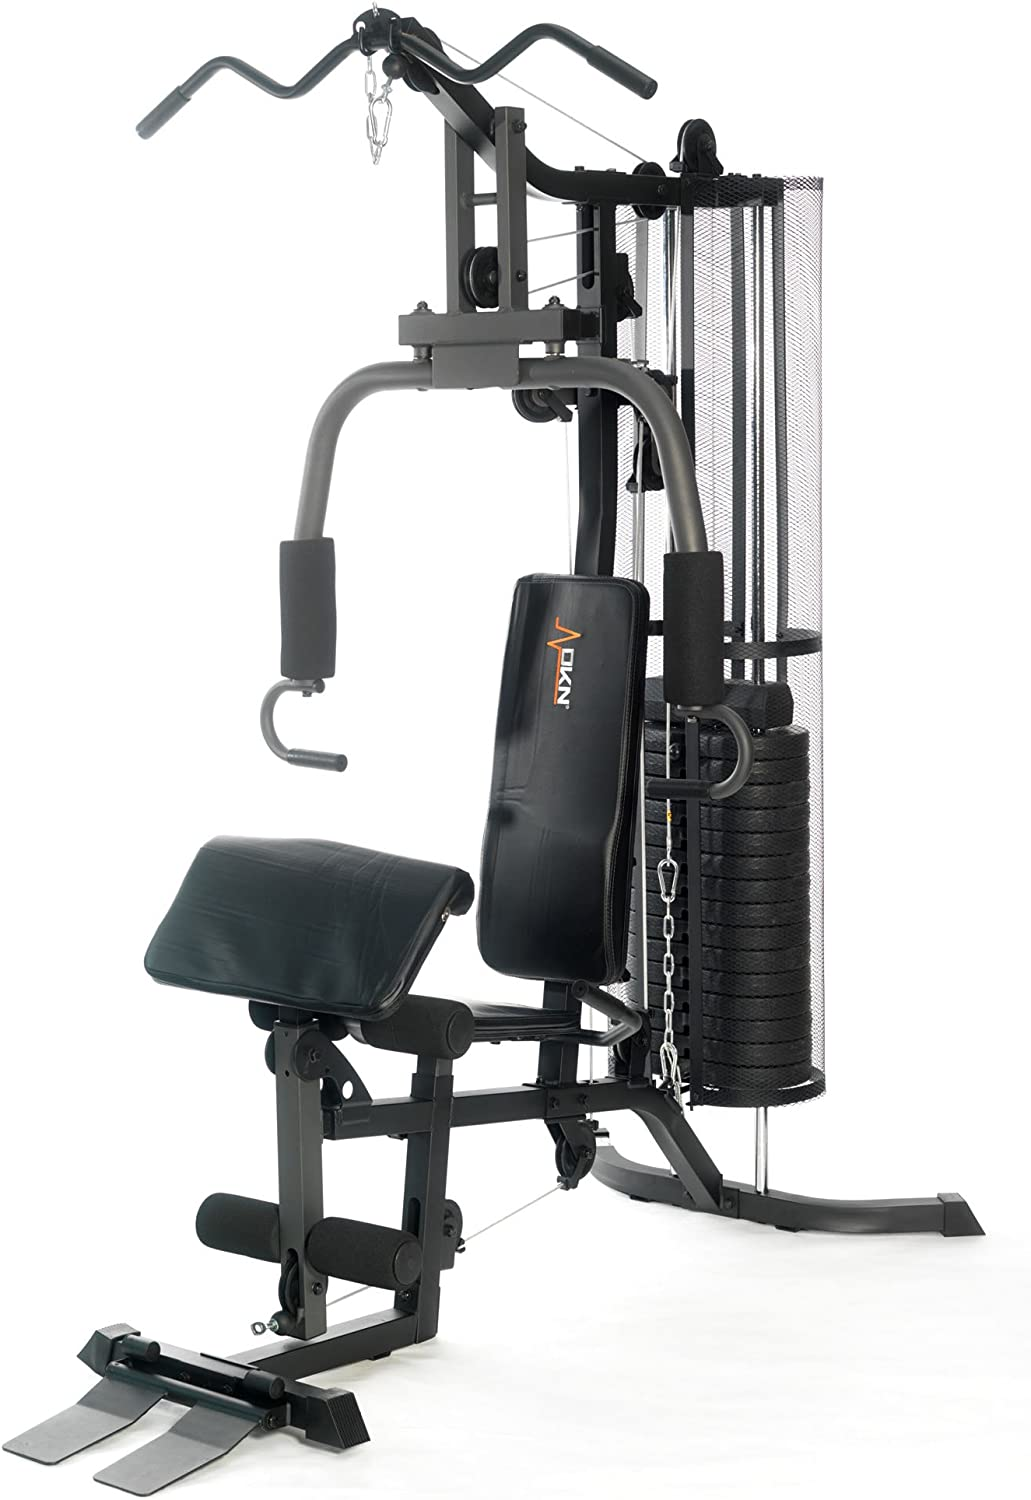 DKN Studio 7400 Compact Home Multi Gym